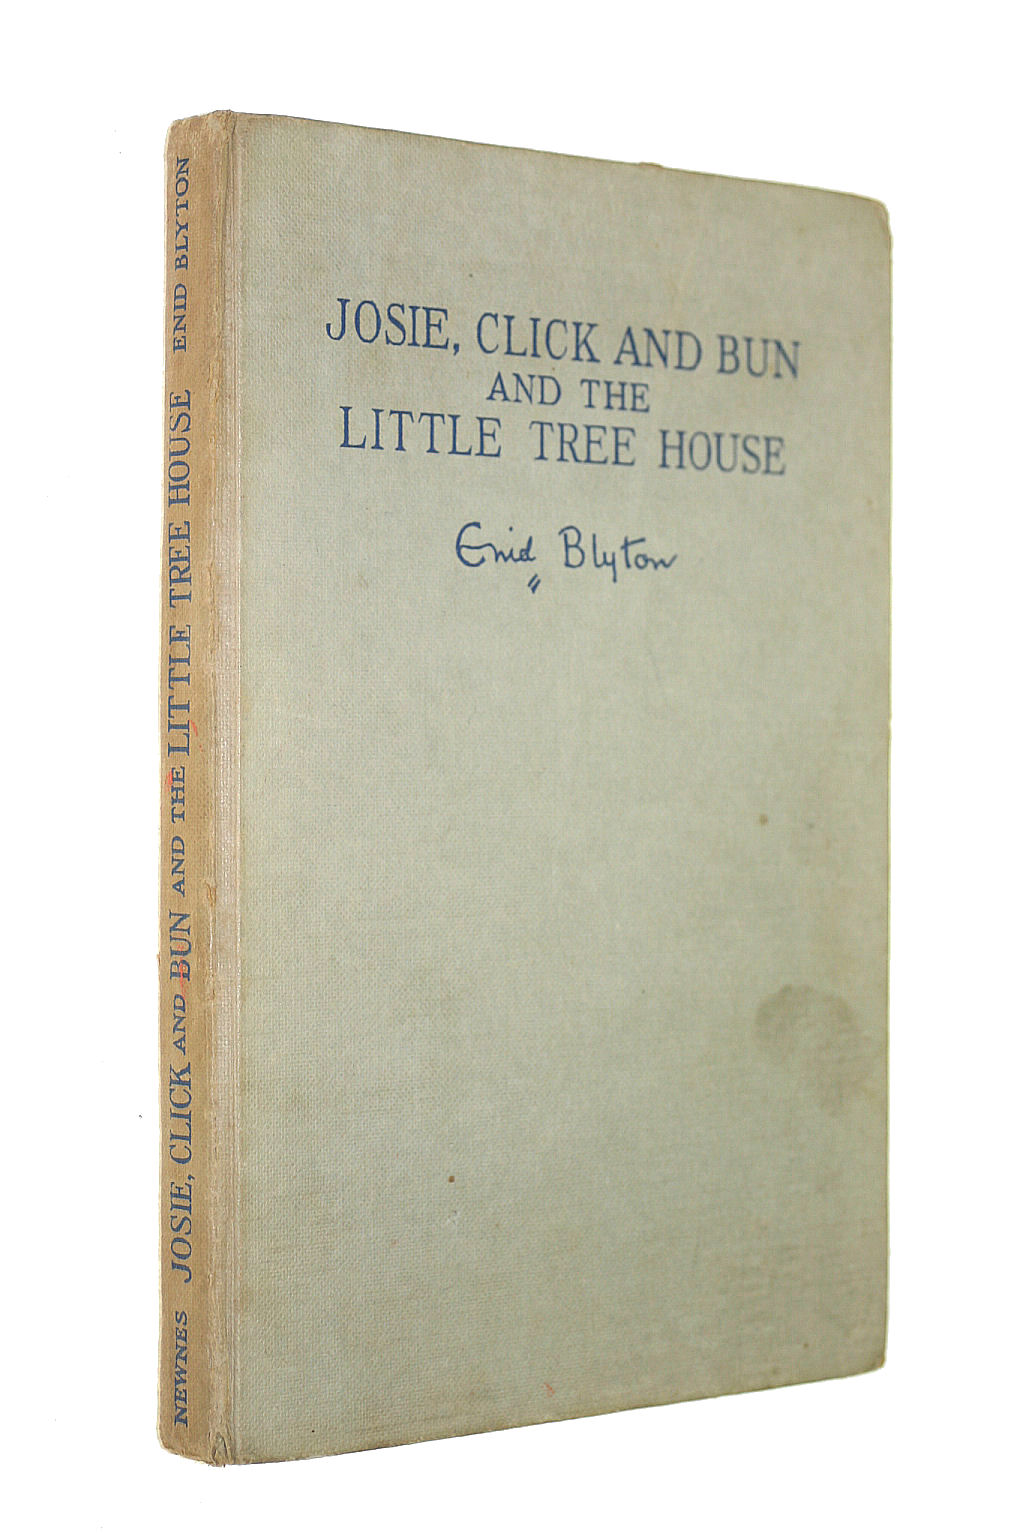 Image for Josie, Click and Bun and the little tree house